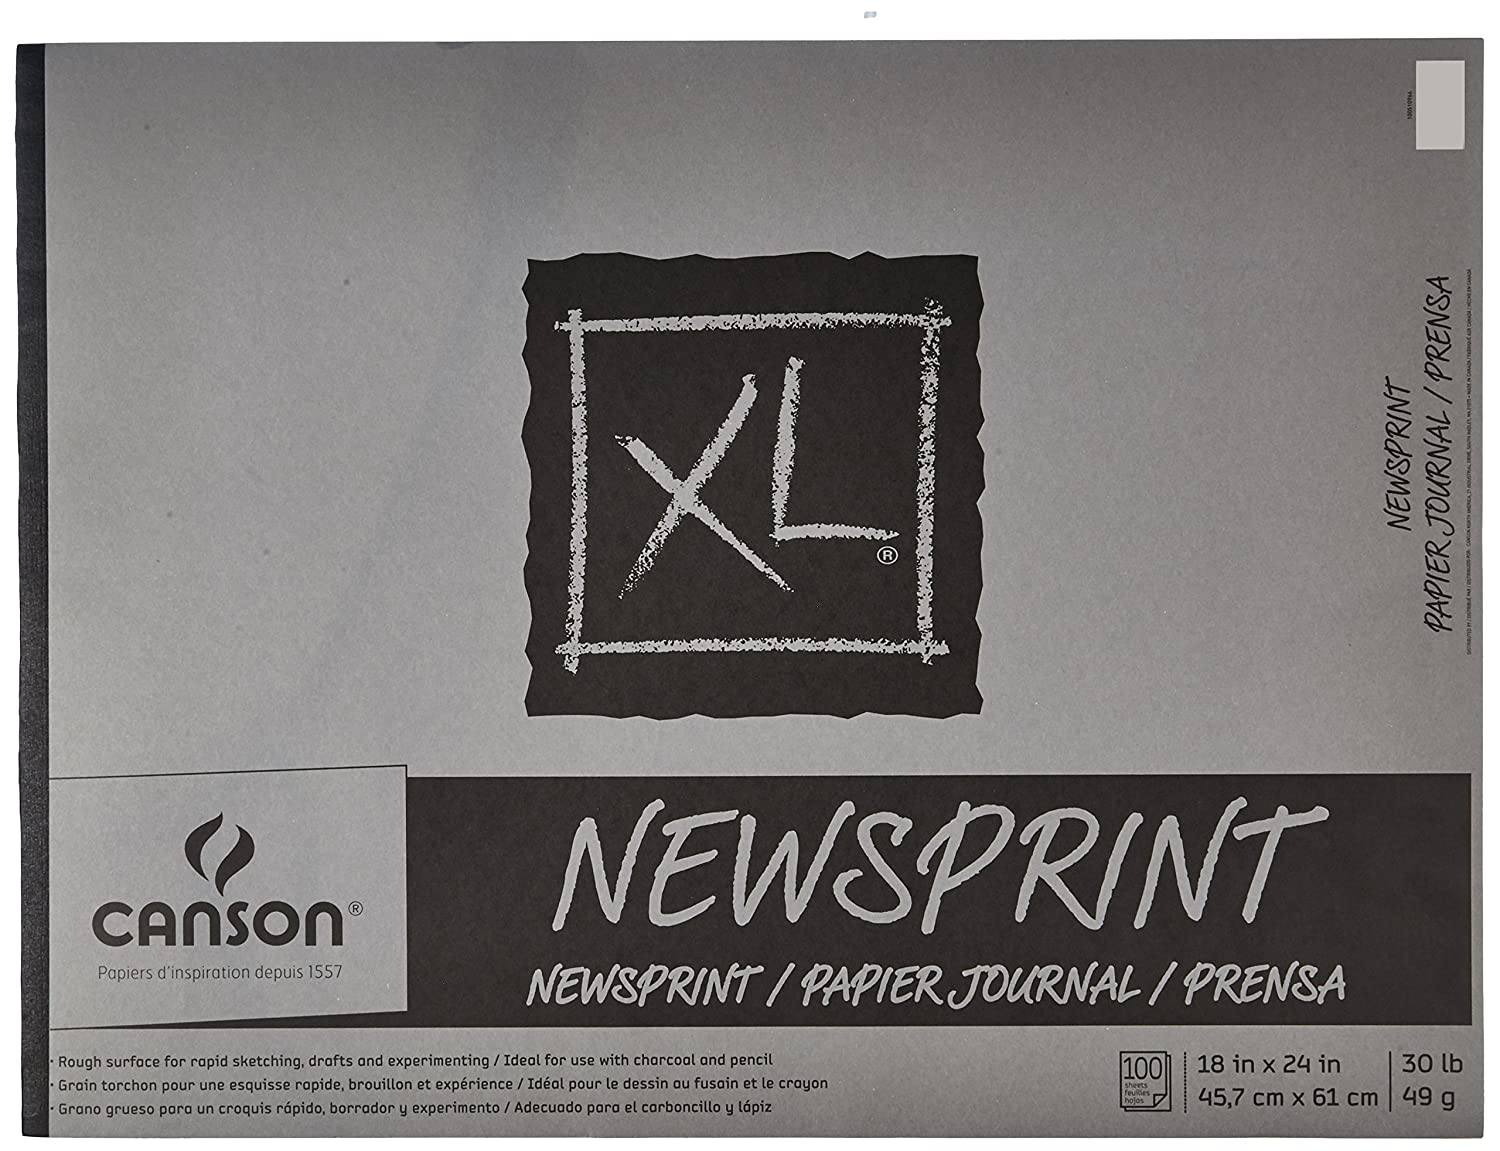 Canson 100510966 Biggie Newsprint Pad, Paper, 100 Sheets, 18 x 24 Size, White 18 x 24 Size Canson Inc 407601